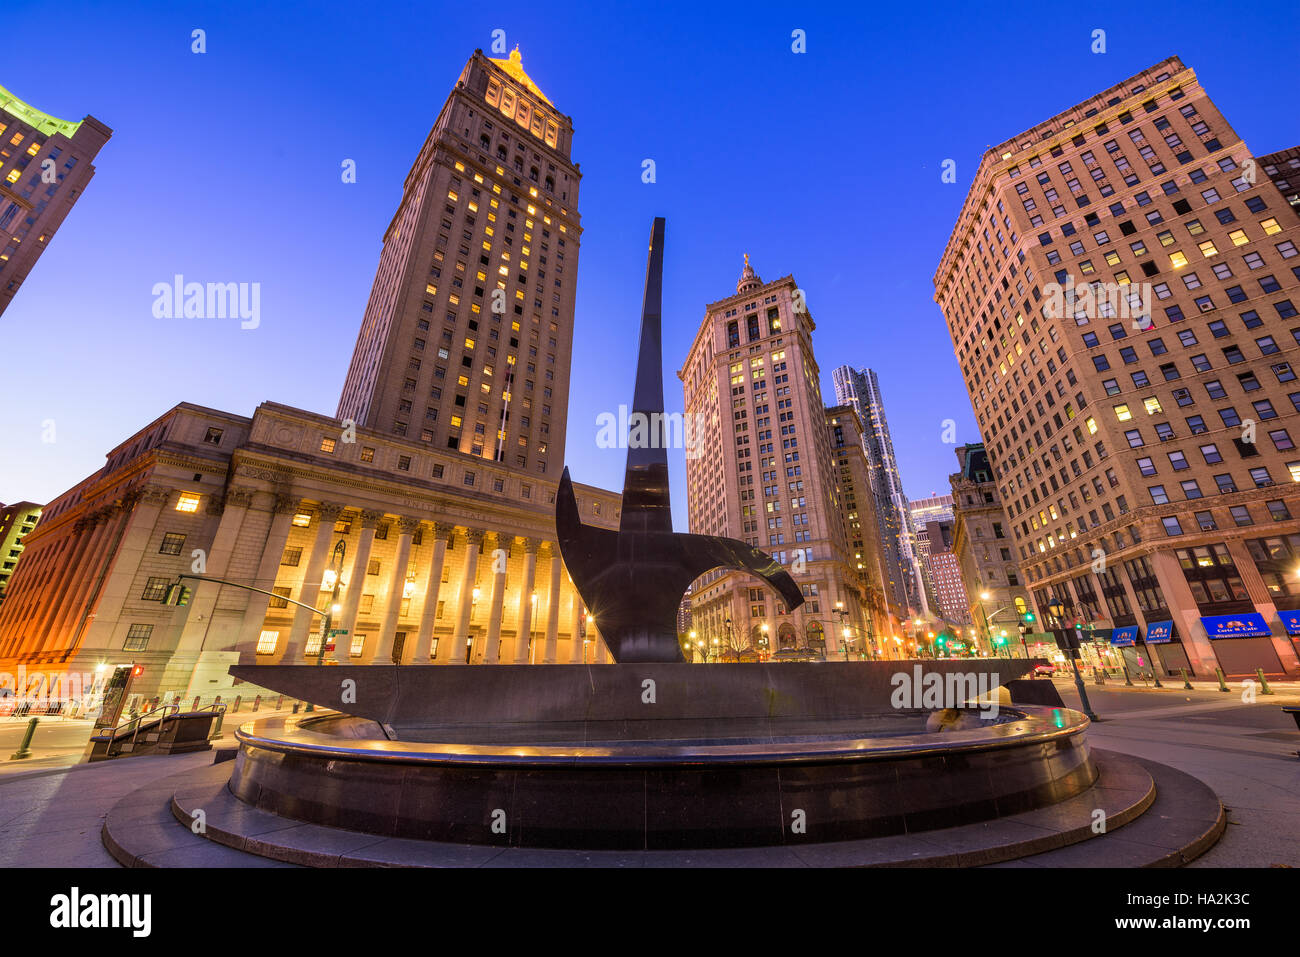 NEW YORK CITY - NOVEMBER 11, 2016: The Triumph of the Human Spirit sculpture at Foley Square in the Civic Center - Stock Image